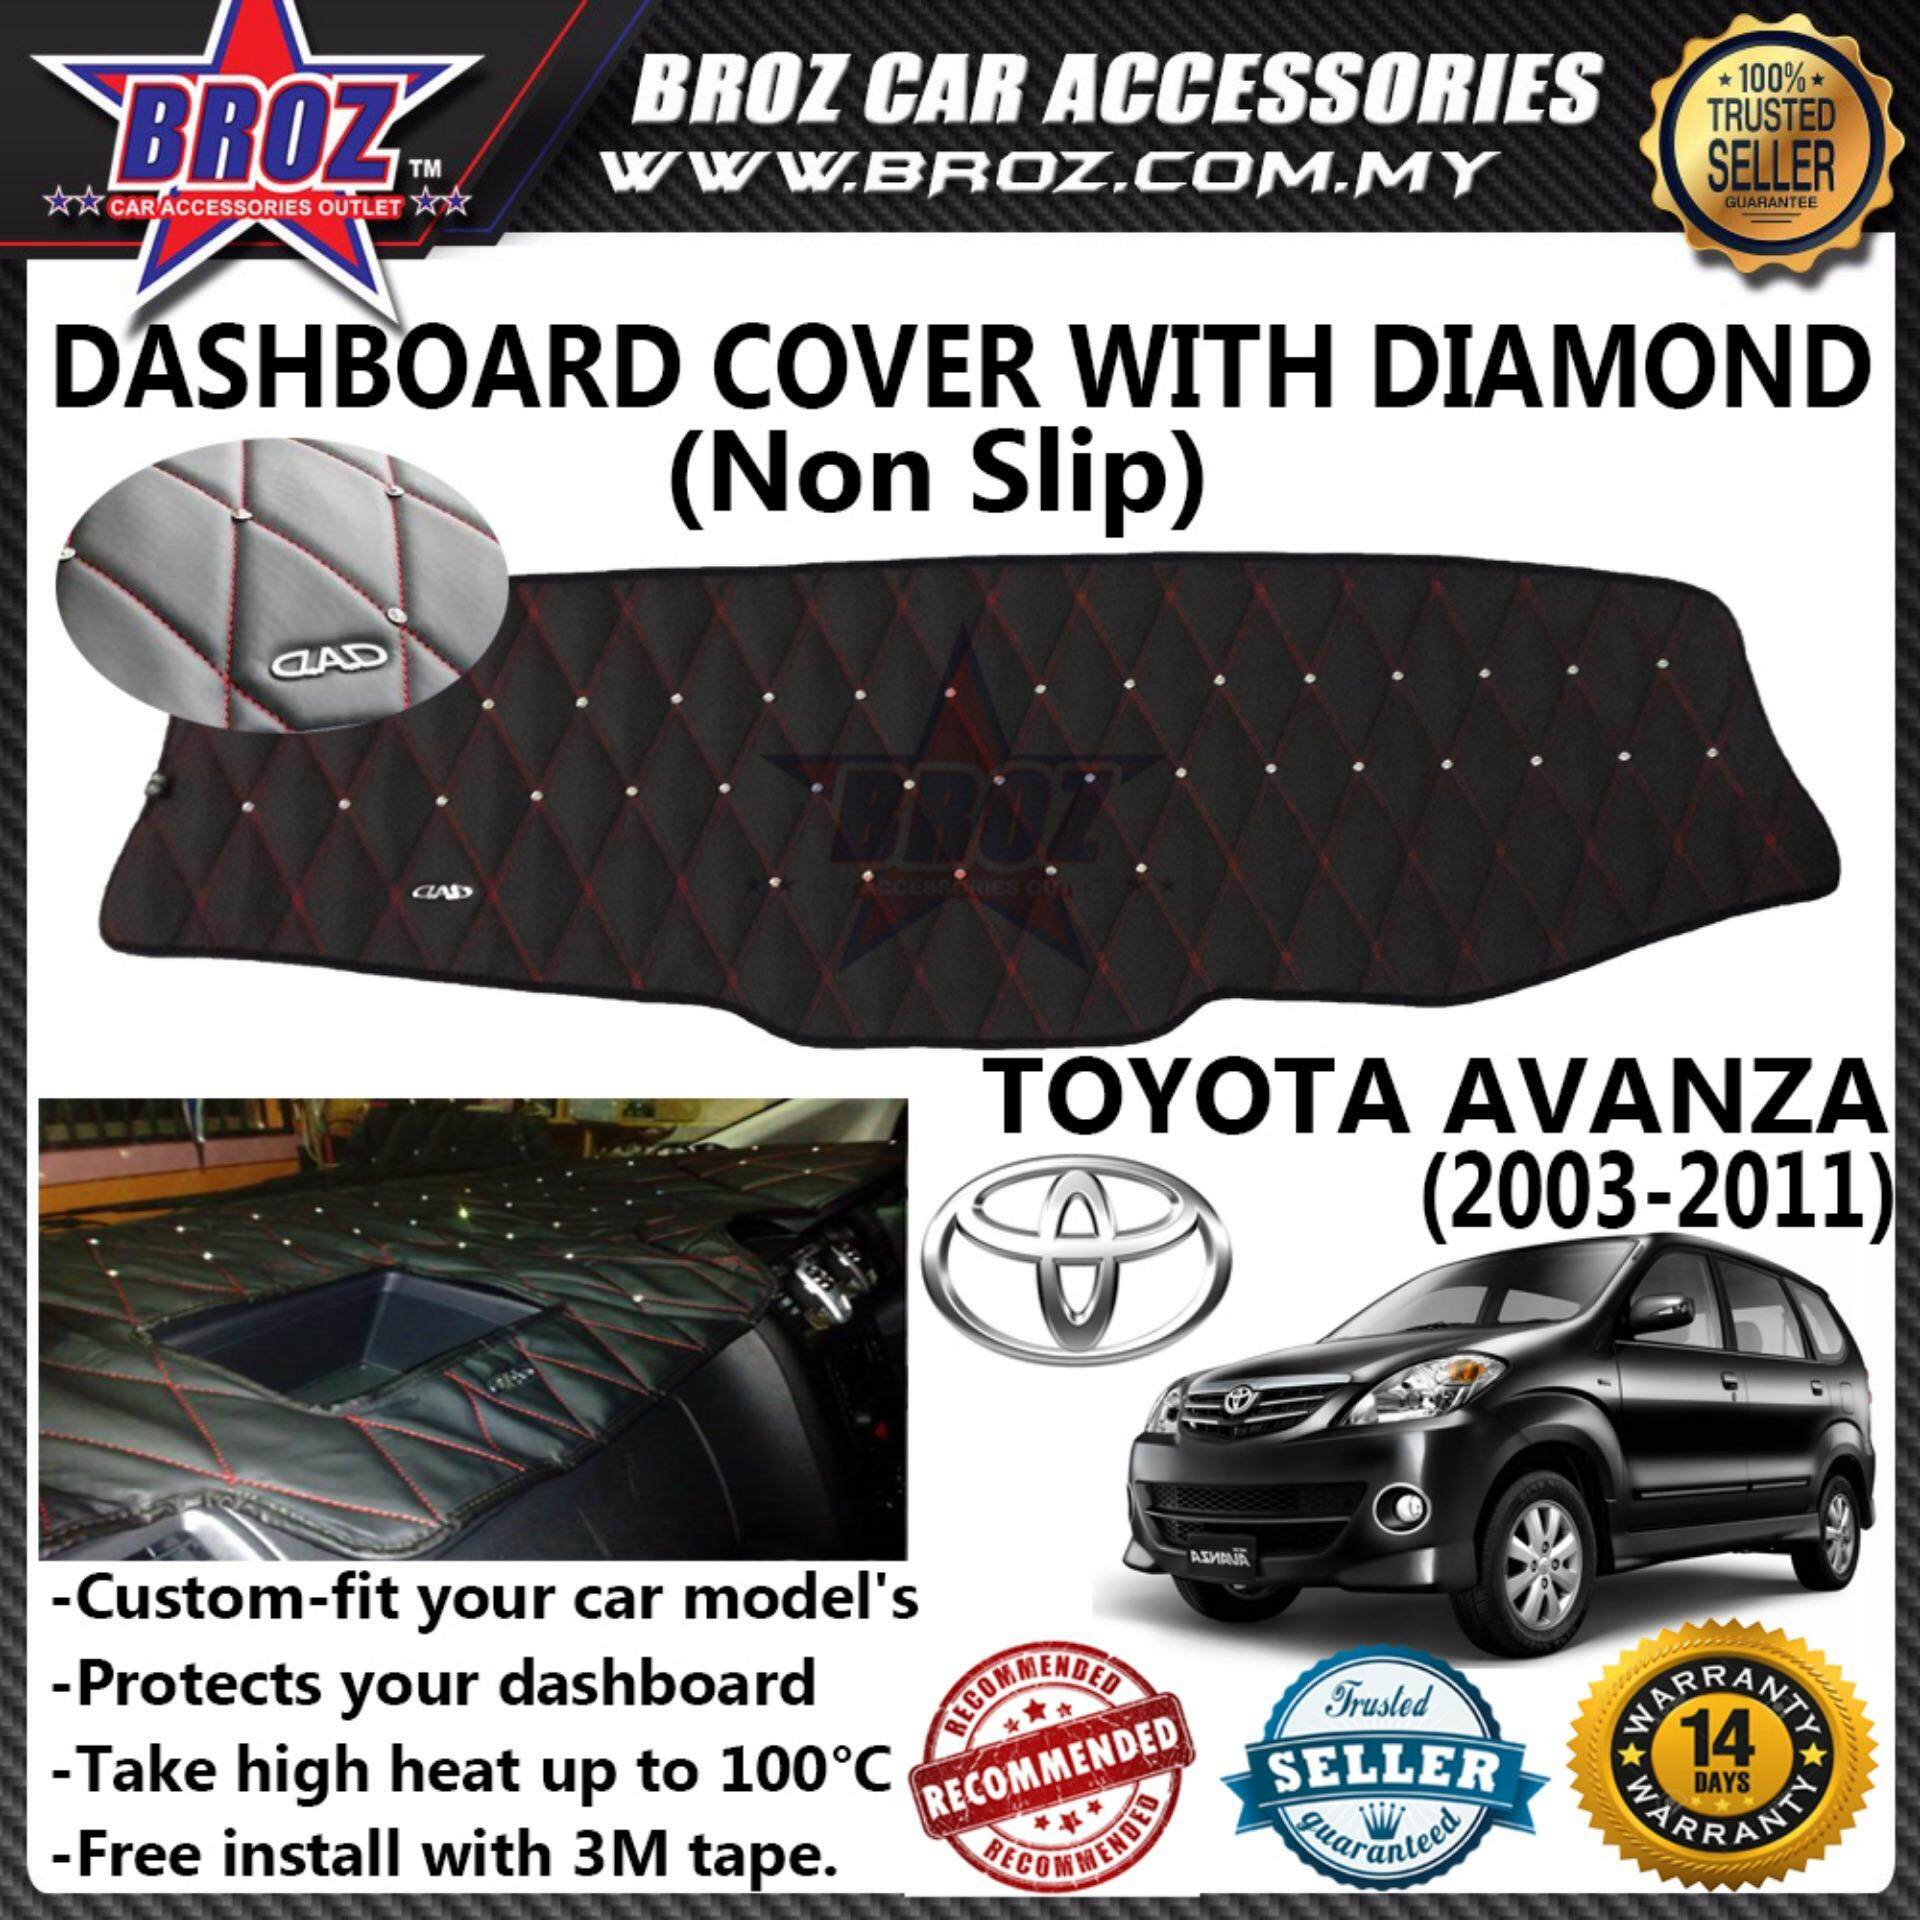 Non Slip Dashboard Cover with diamond for Toyota Avanza 2003-2011